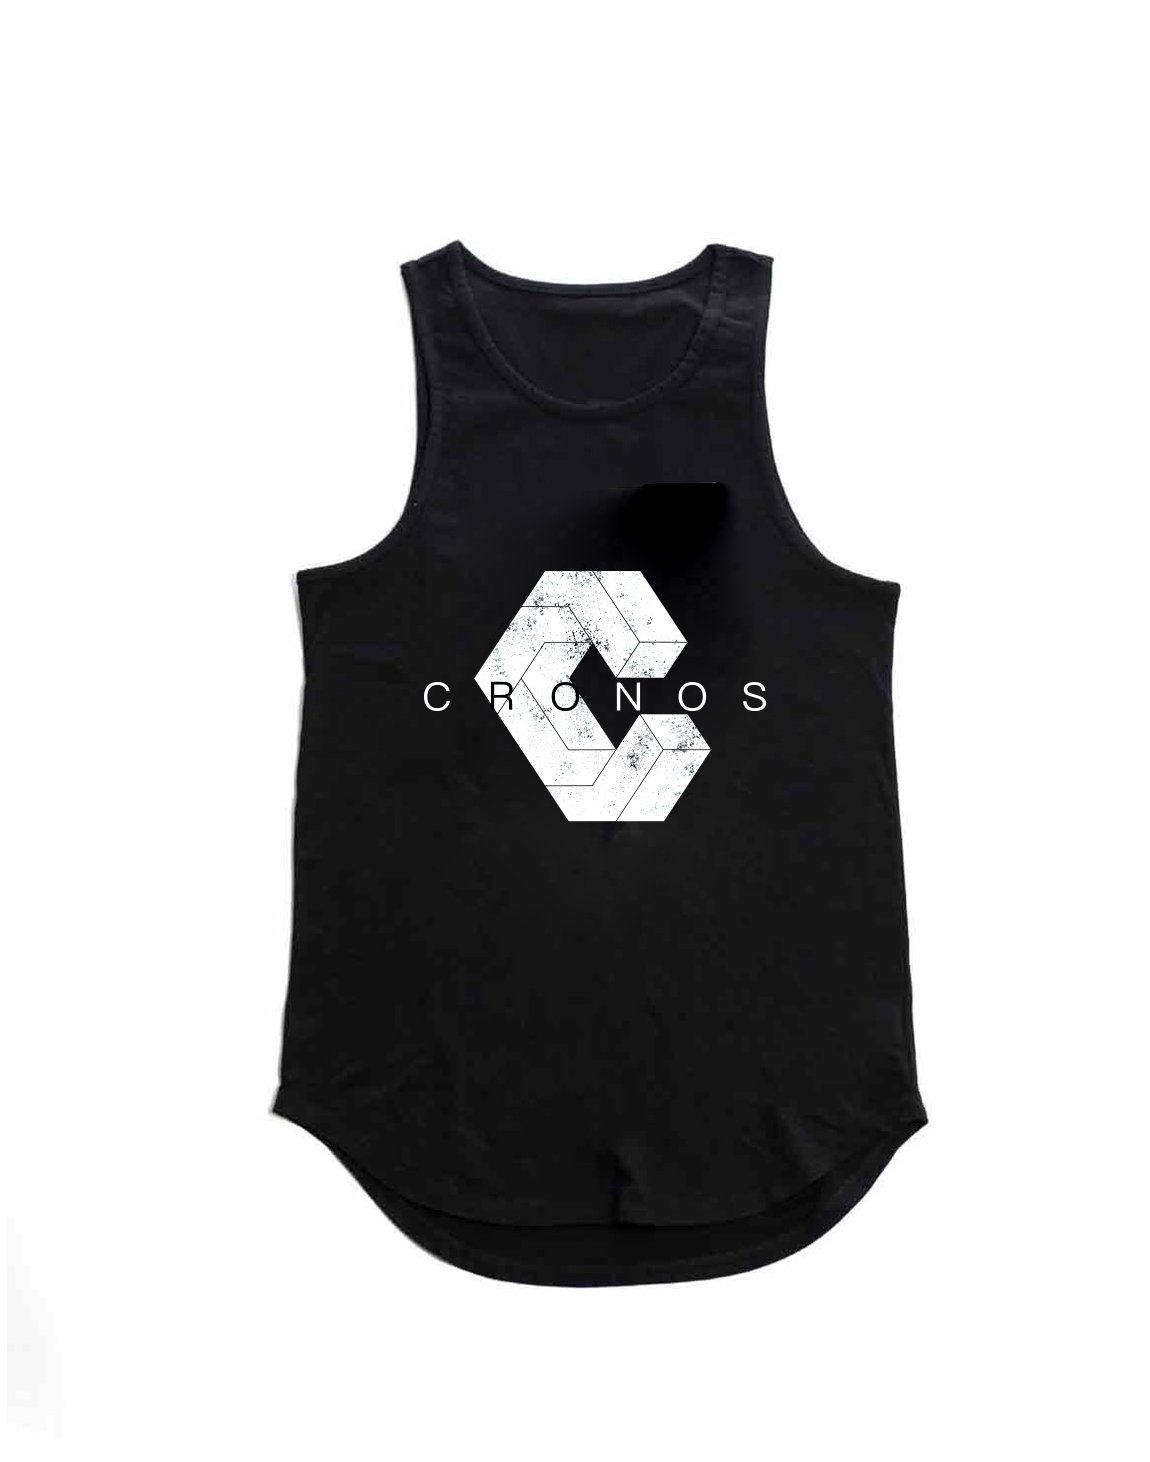 <img class='new_mark_img1' src='https://img.shop-pro.jp/img/new/icons1.gif' style='border:none;display:inline;margin:0px;padding:0px;width:auto;' />CRONOS NEW LOGO TANK TOP 【BLACK】